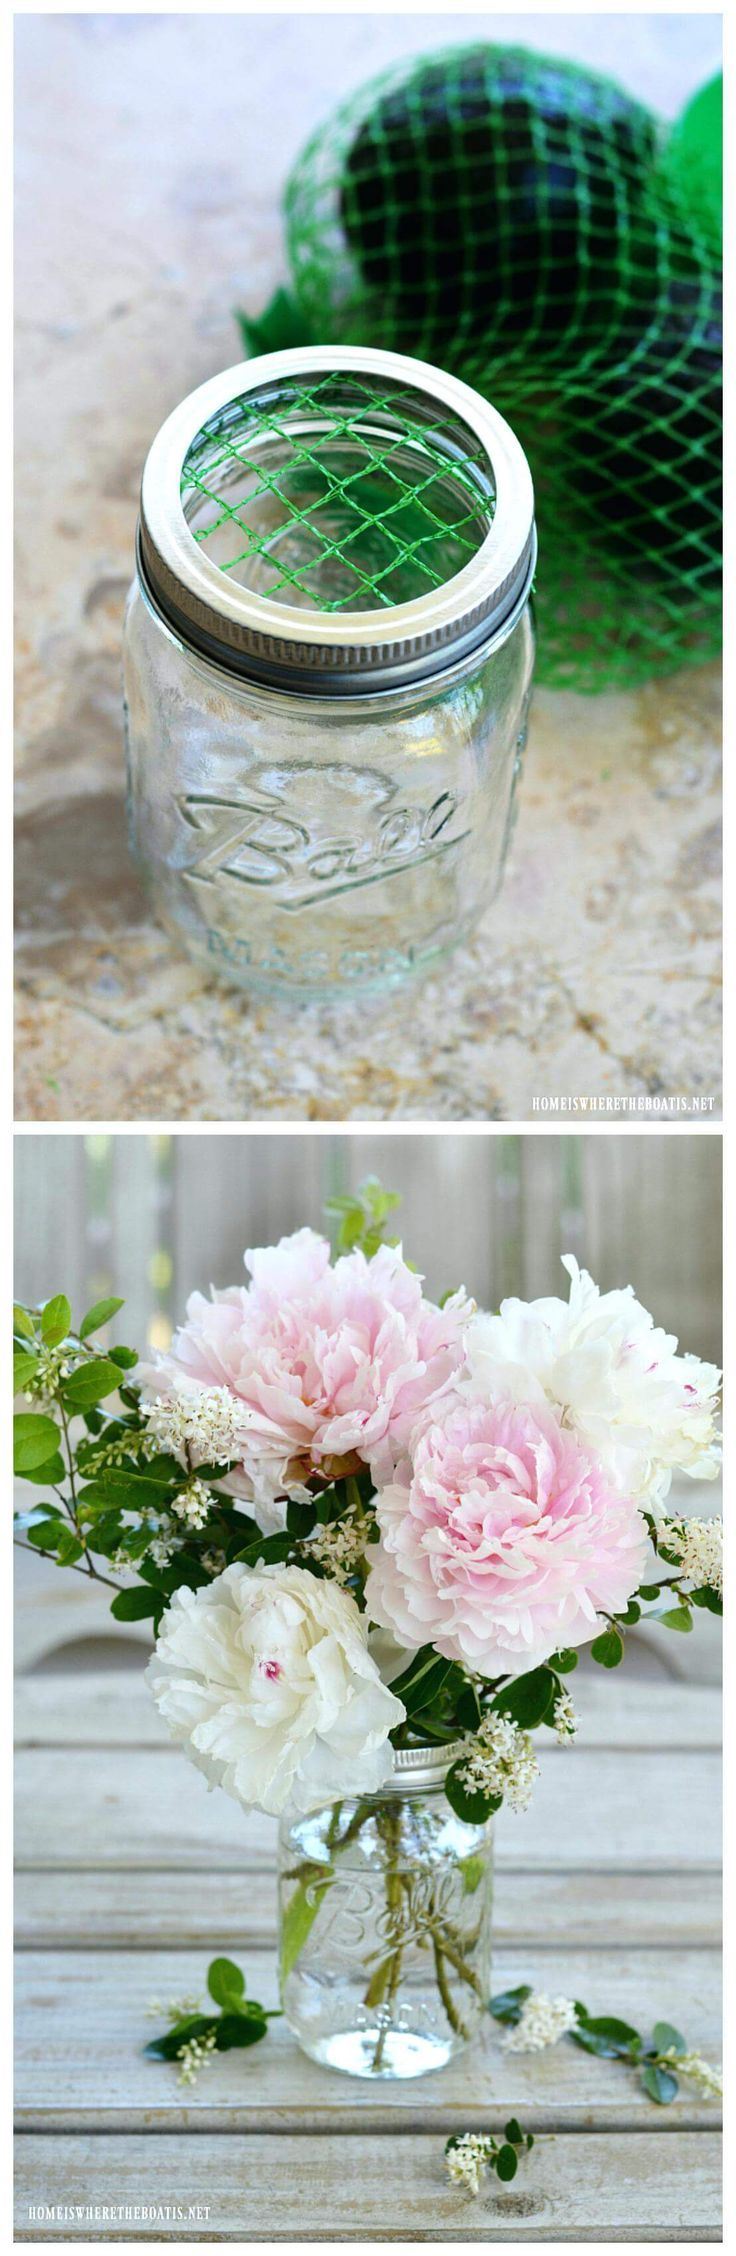 Use Vegetable Bags to Hold Flowers Upright